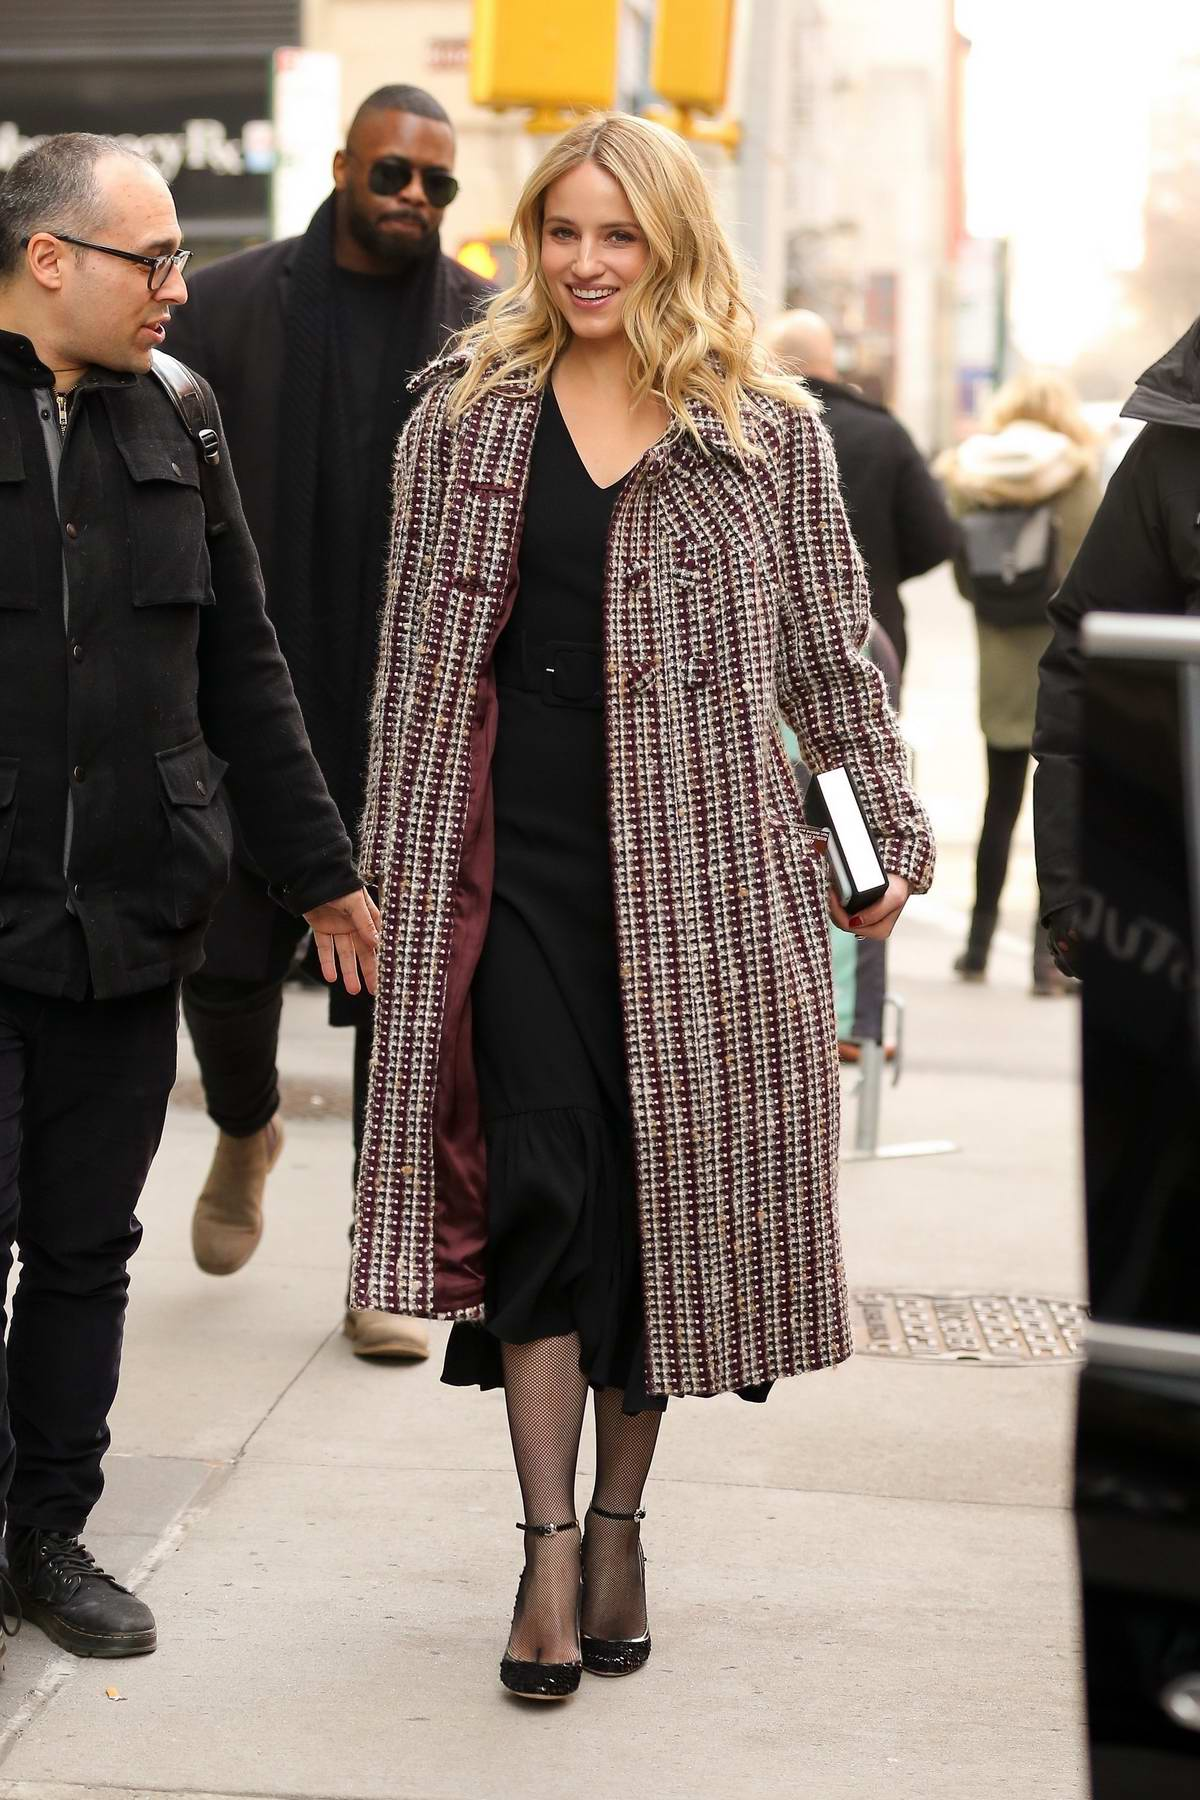 Dianna Agron is all smiles as she arrives at AOL Build Studio in New York City